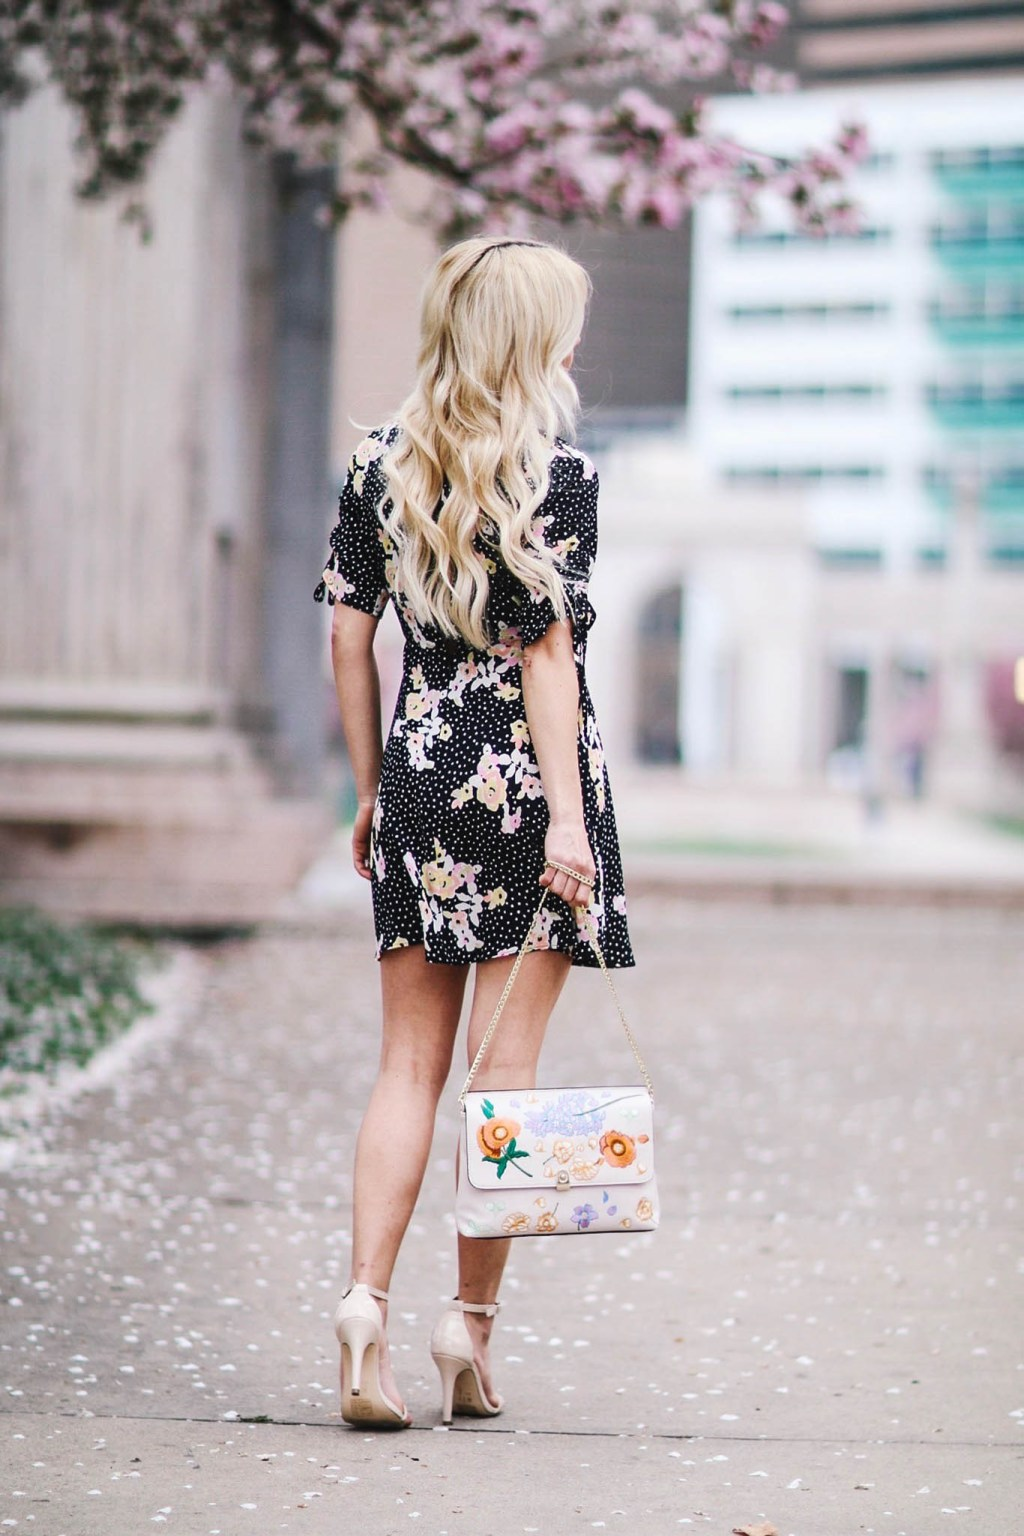 Alena Gidenko of modaprints.com styles a floral TopShop dress for Spring